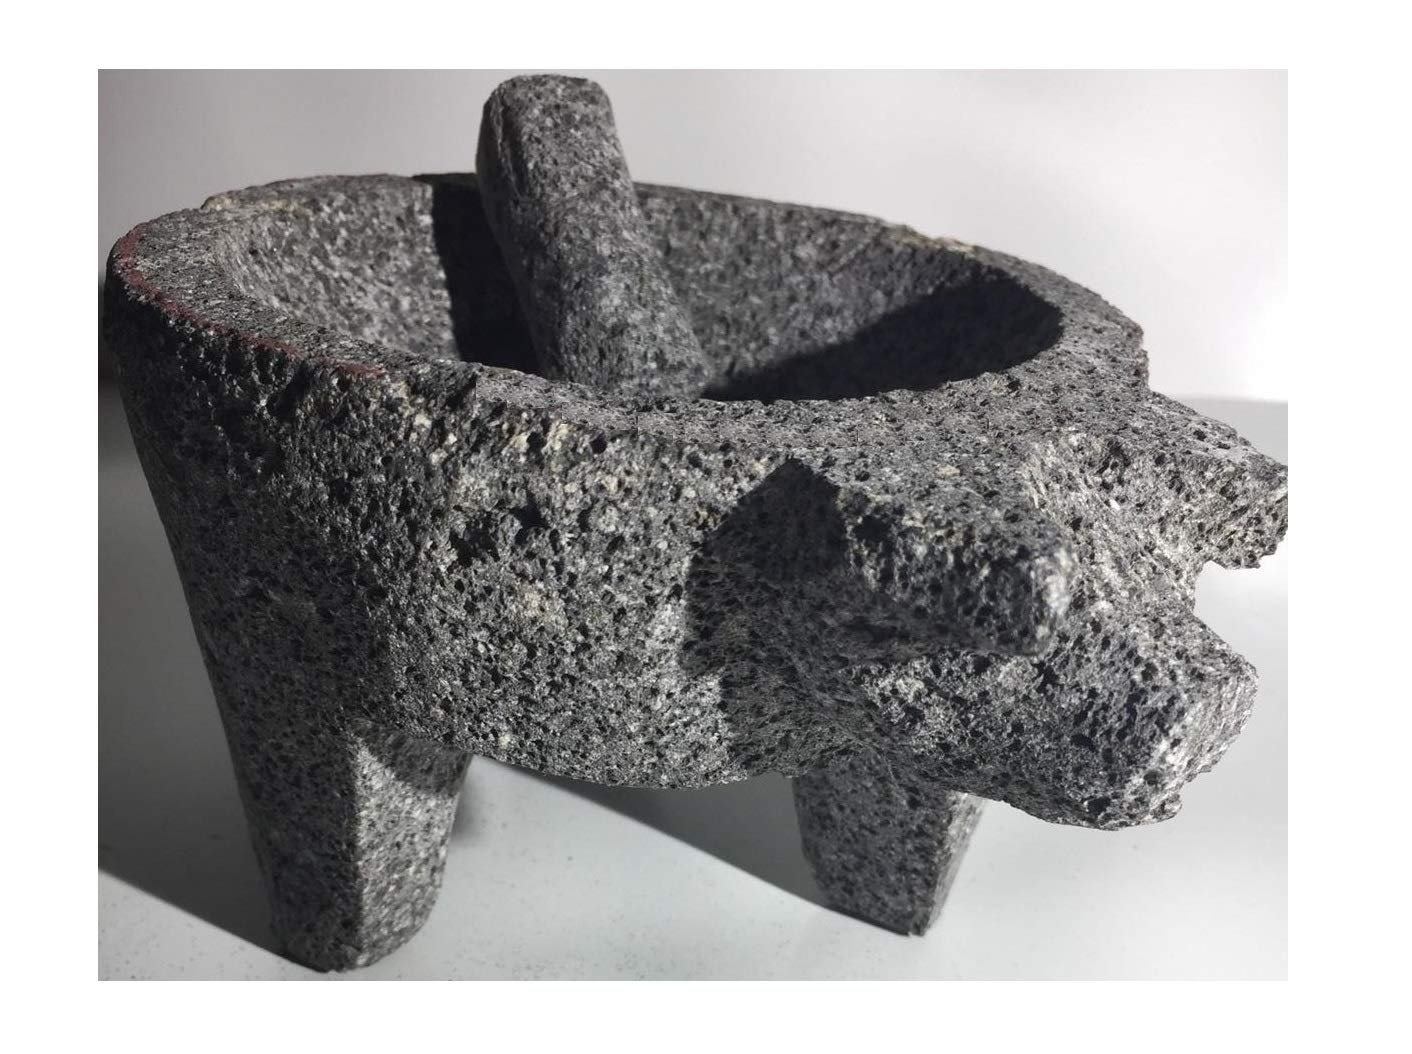 Made in Mexico Piggy Cerdo Puerco Genuine Mexican Manual Guacamole Salsa Maker Volcanic Lava Rock Stone Molcajete/Tejolote Mortar and Pestle Herbs Spices Grains 8'' Large Pig by always-quality